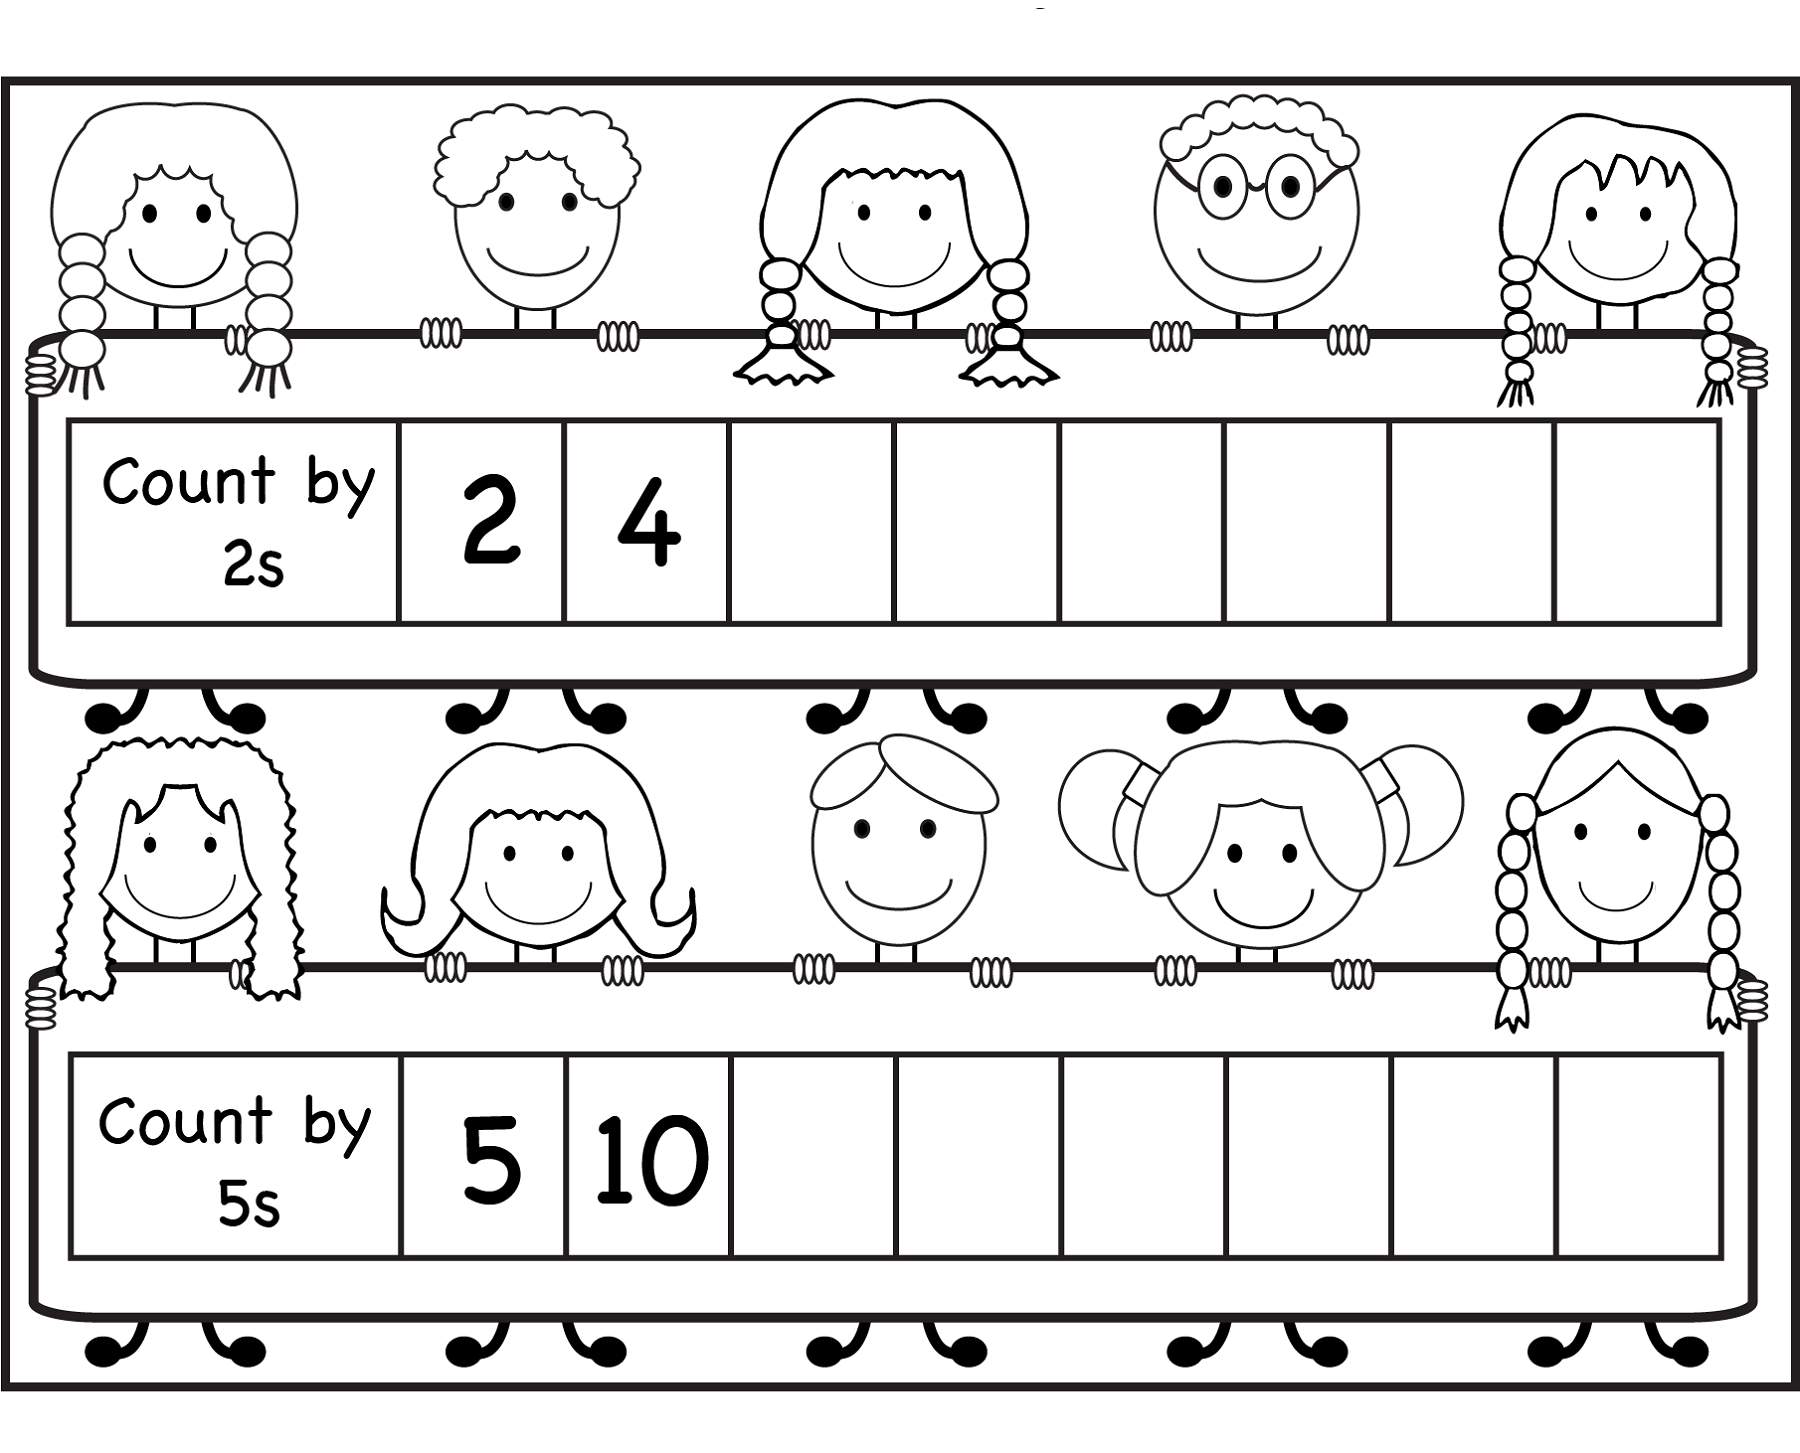 Count By 2 Worksheets For Kids